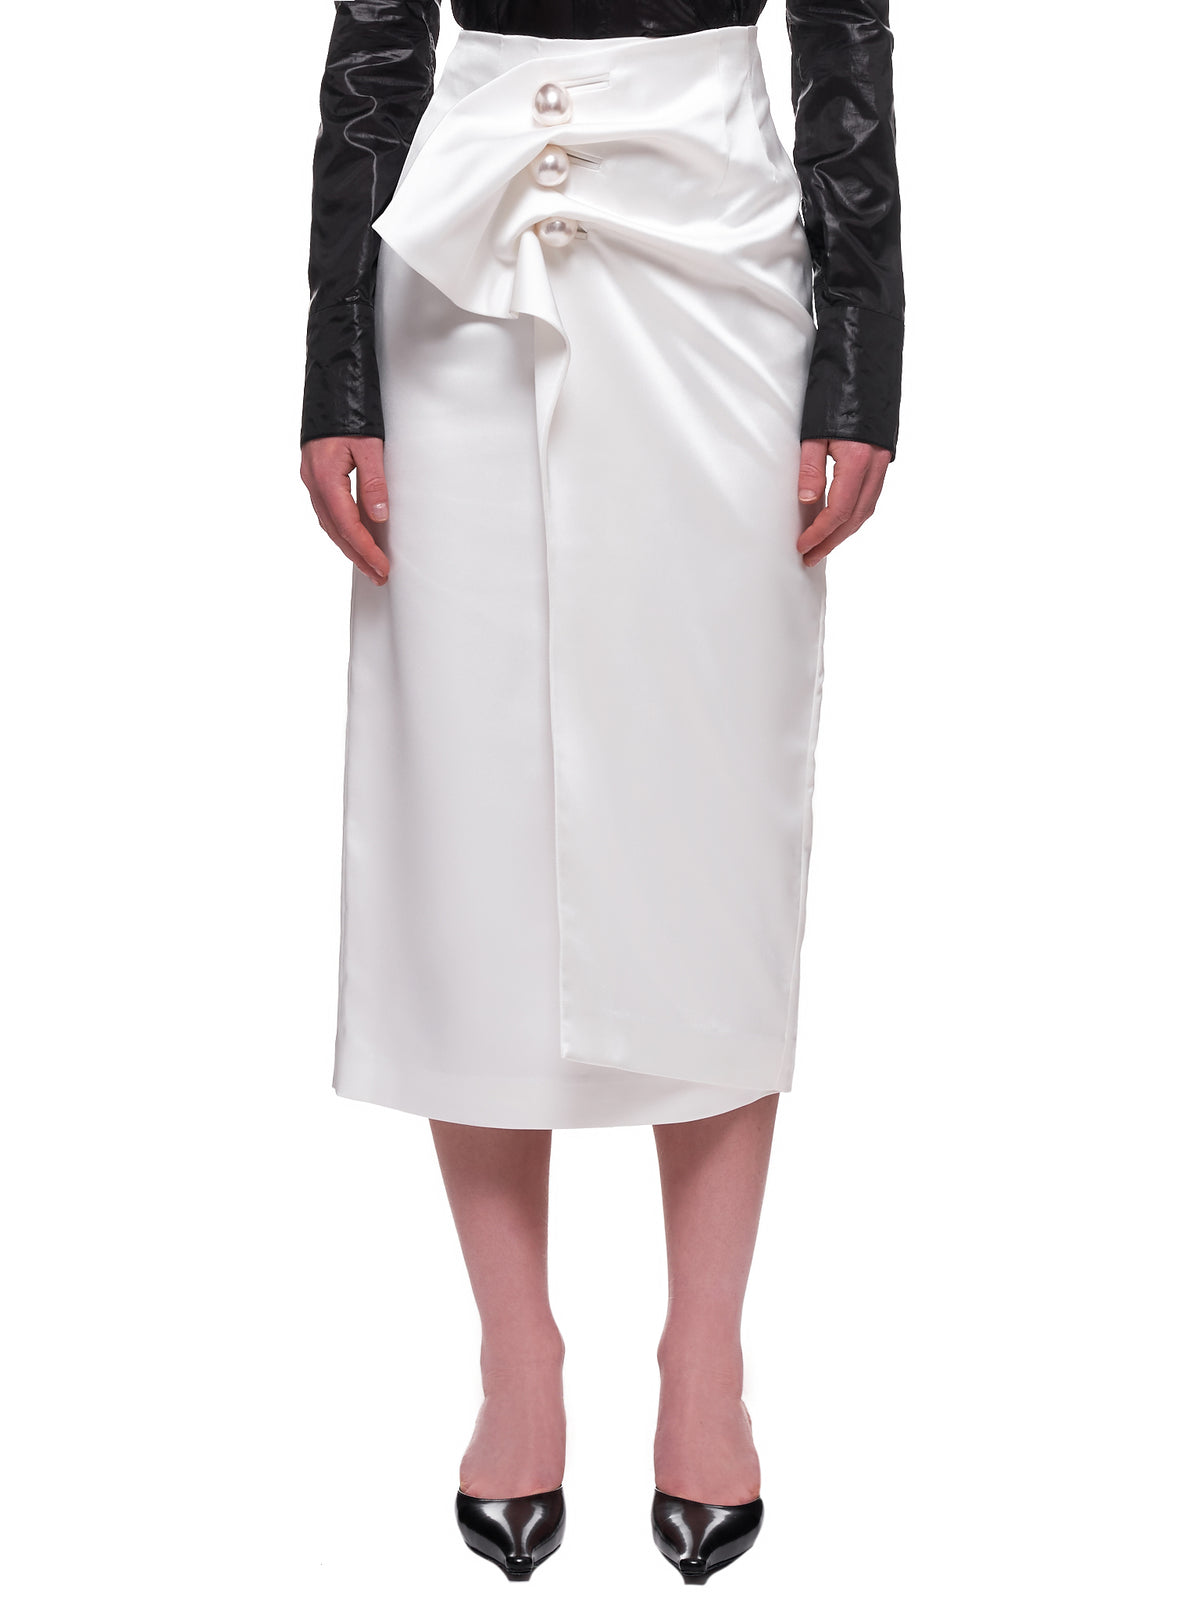 Draped Skirt (SK04-WHITE)